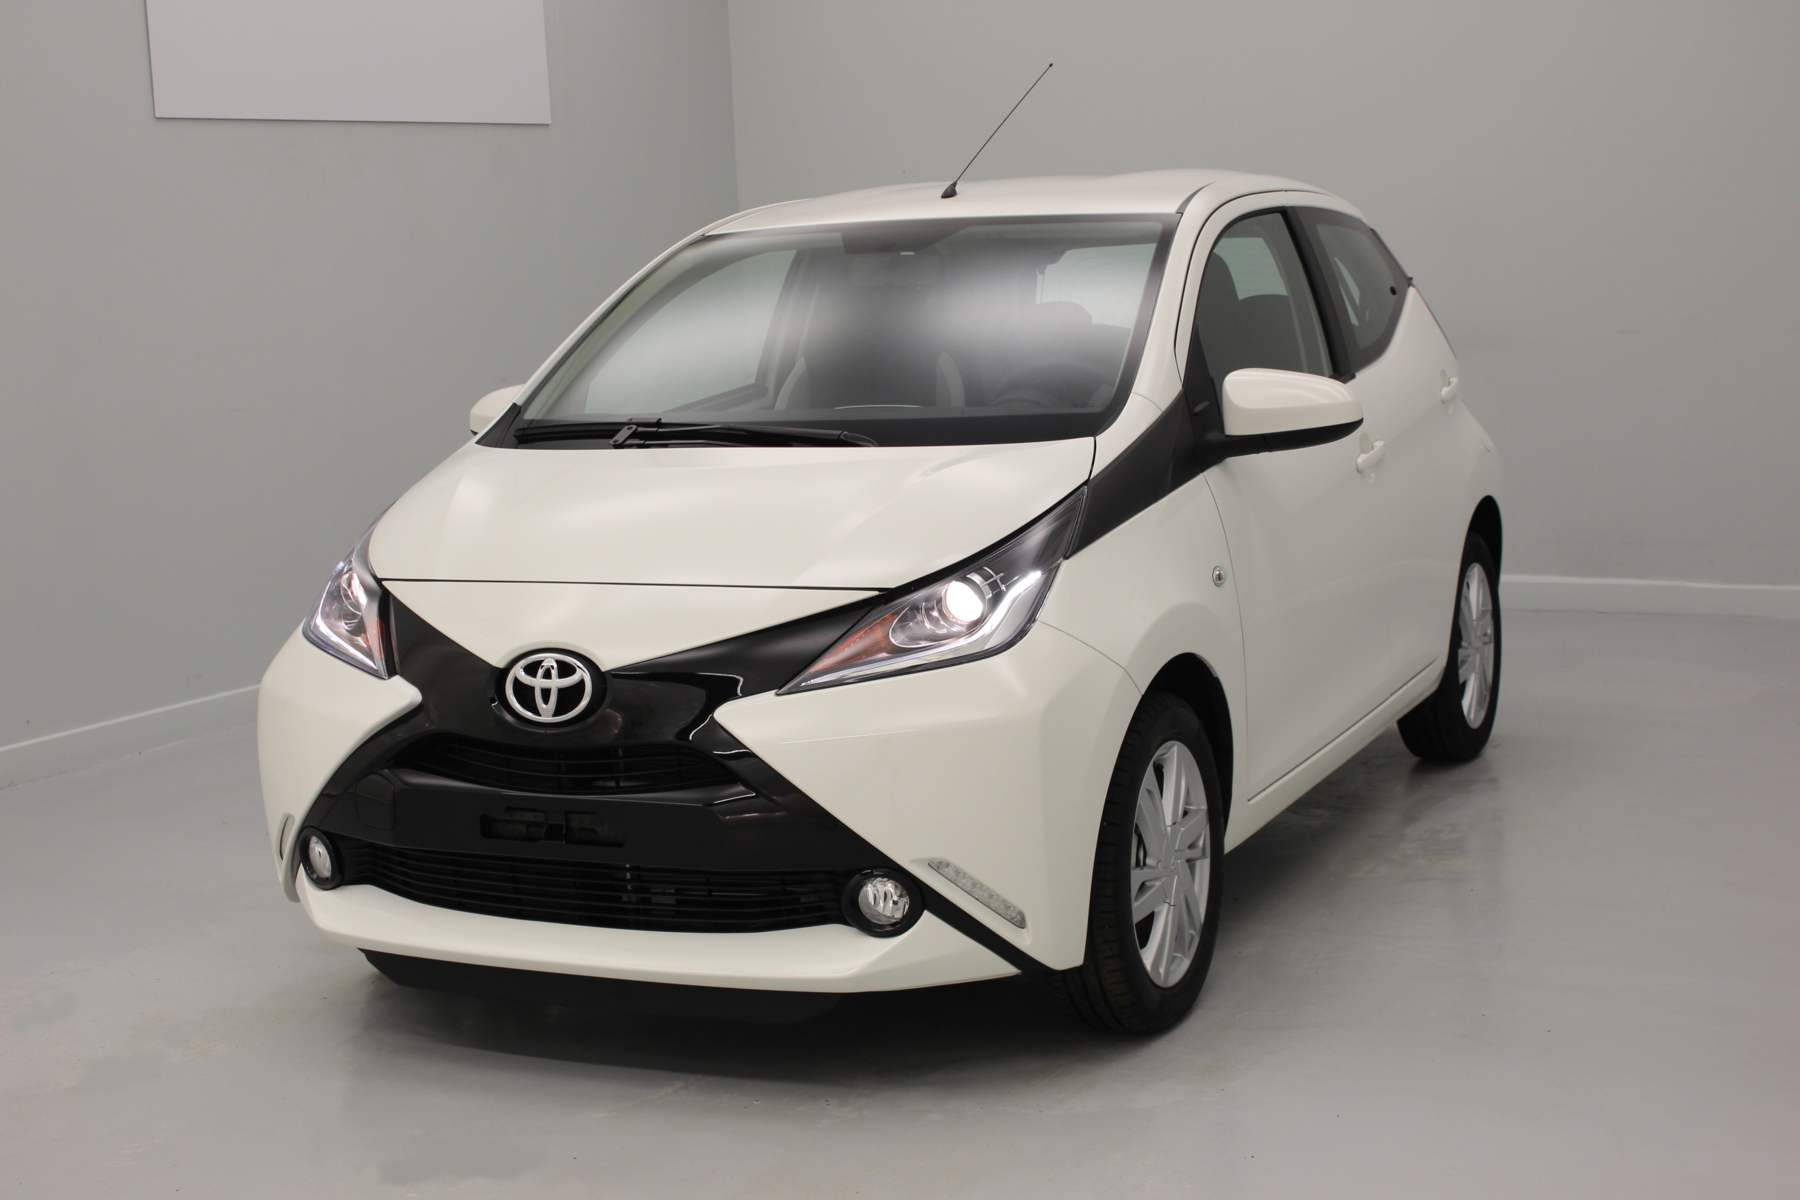 TOYOTA Aygo 1.0 VVT-i x-play Blanc Pur + x-touch + x-light + Jantes alliage 15' avec options